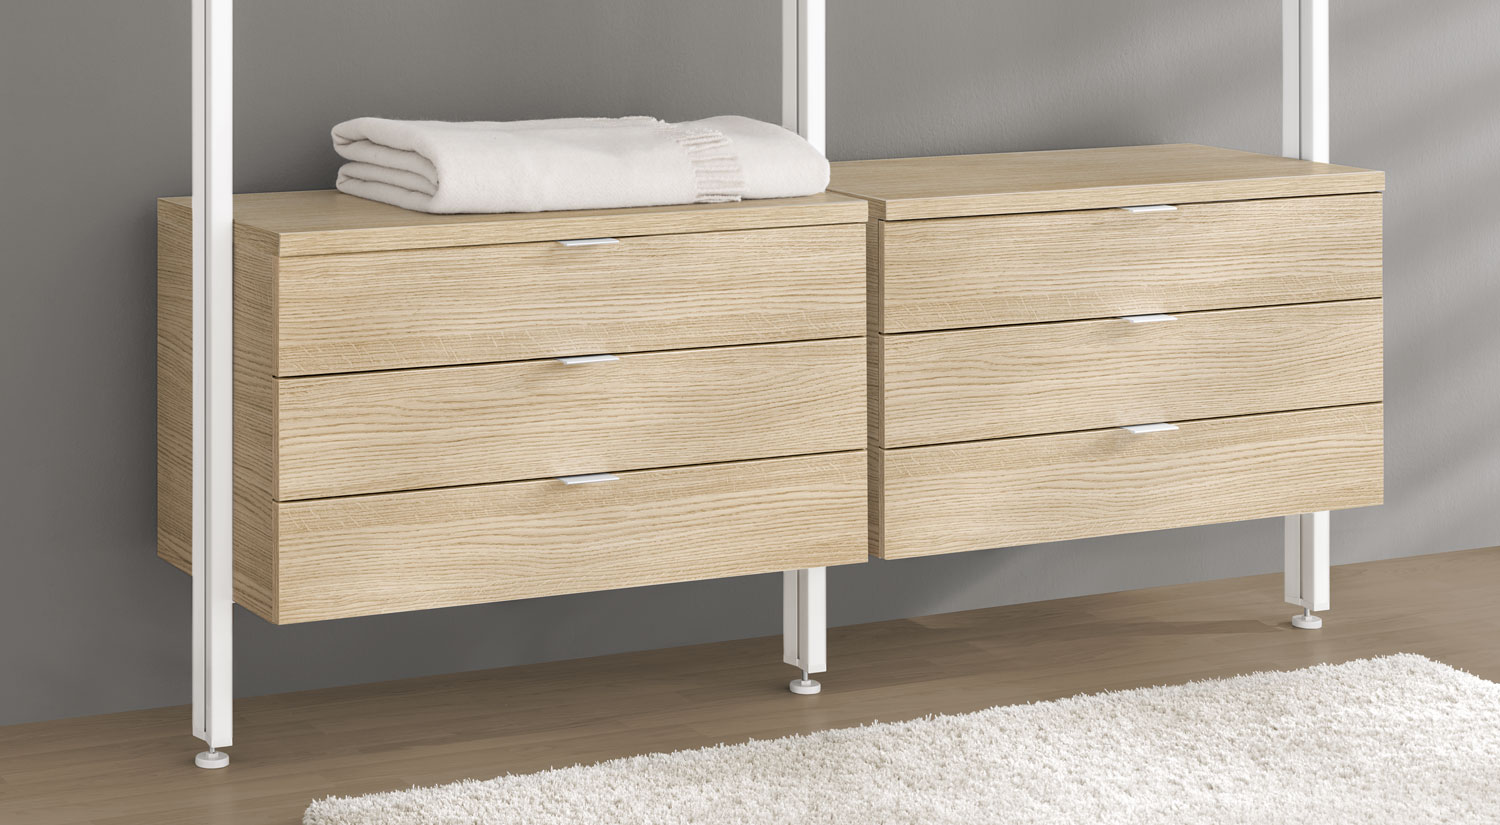 Shelves with Drawer - Drawer Units with drawer holder white in the CLOS-IT shelving system dressing room oak